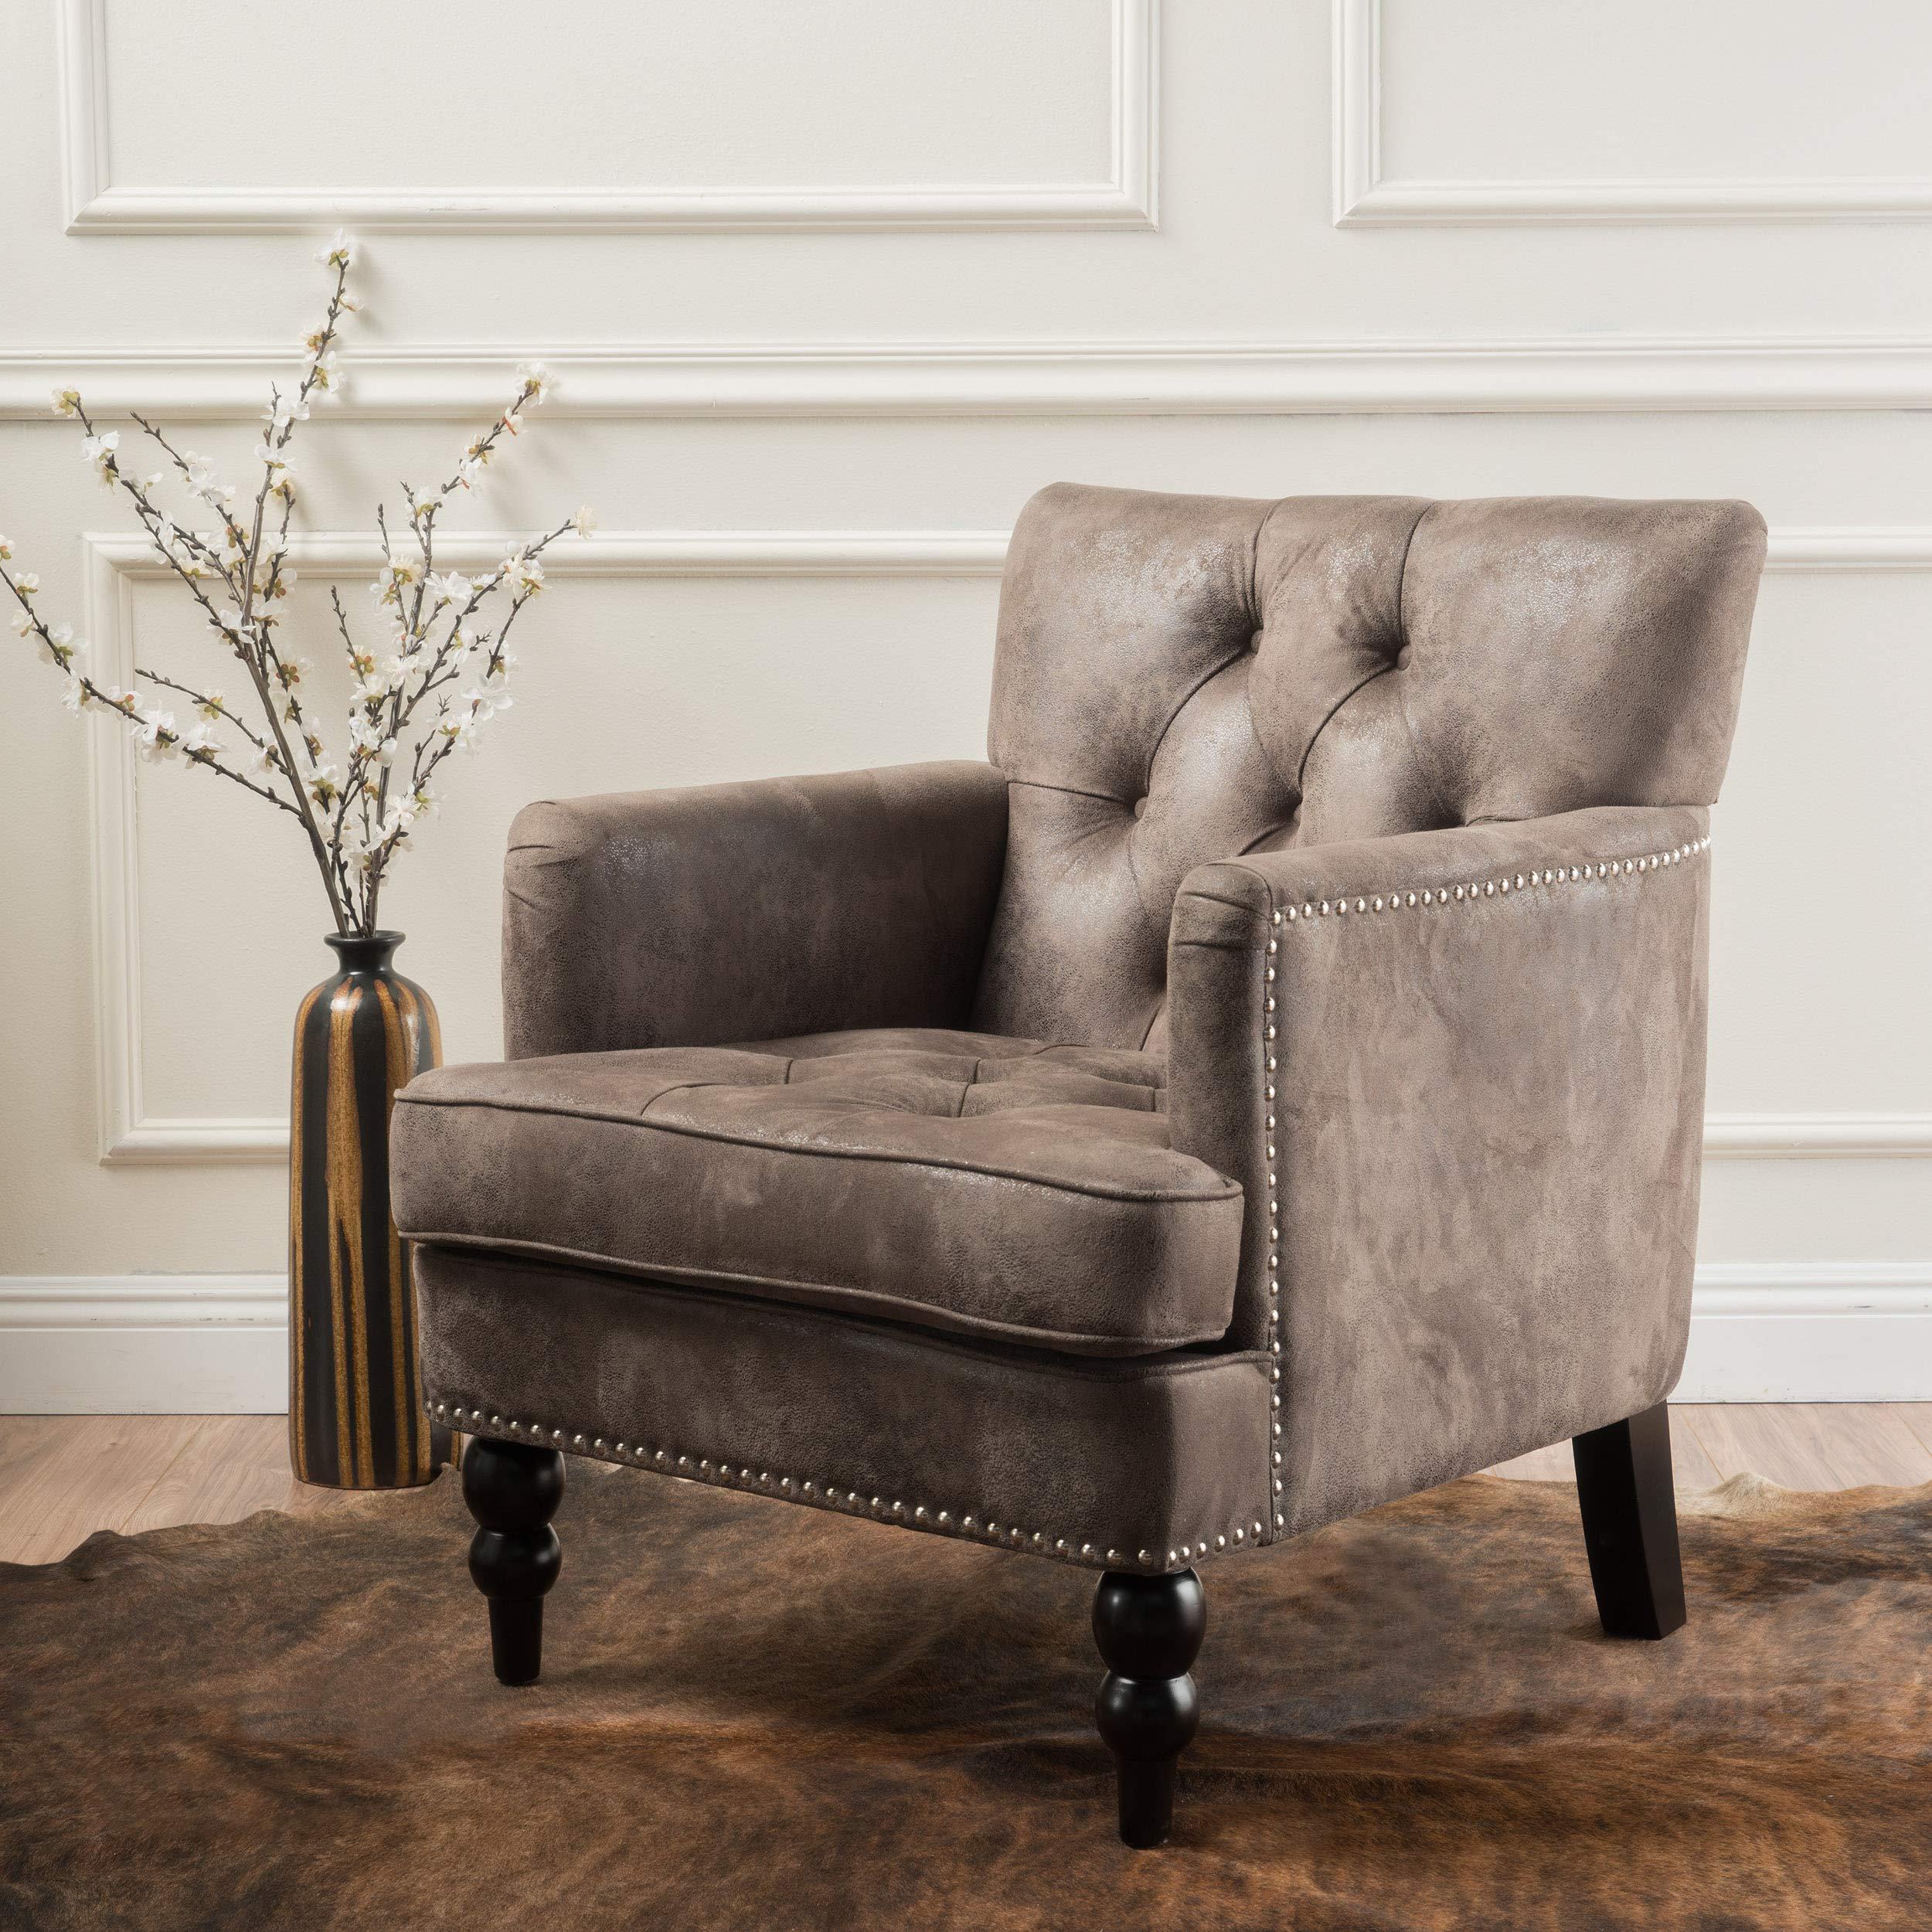 Christopher Knight Home Medford Brown Tufted Club, Fabric Chair with Studded Nailhead Accents, Greyish by Christopher Knight Home